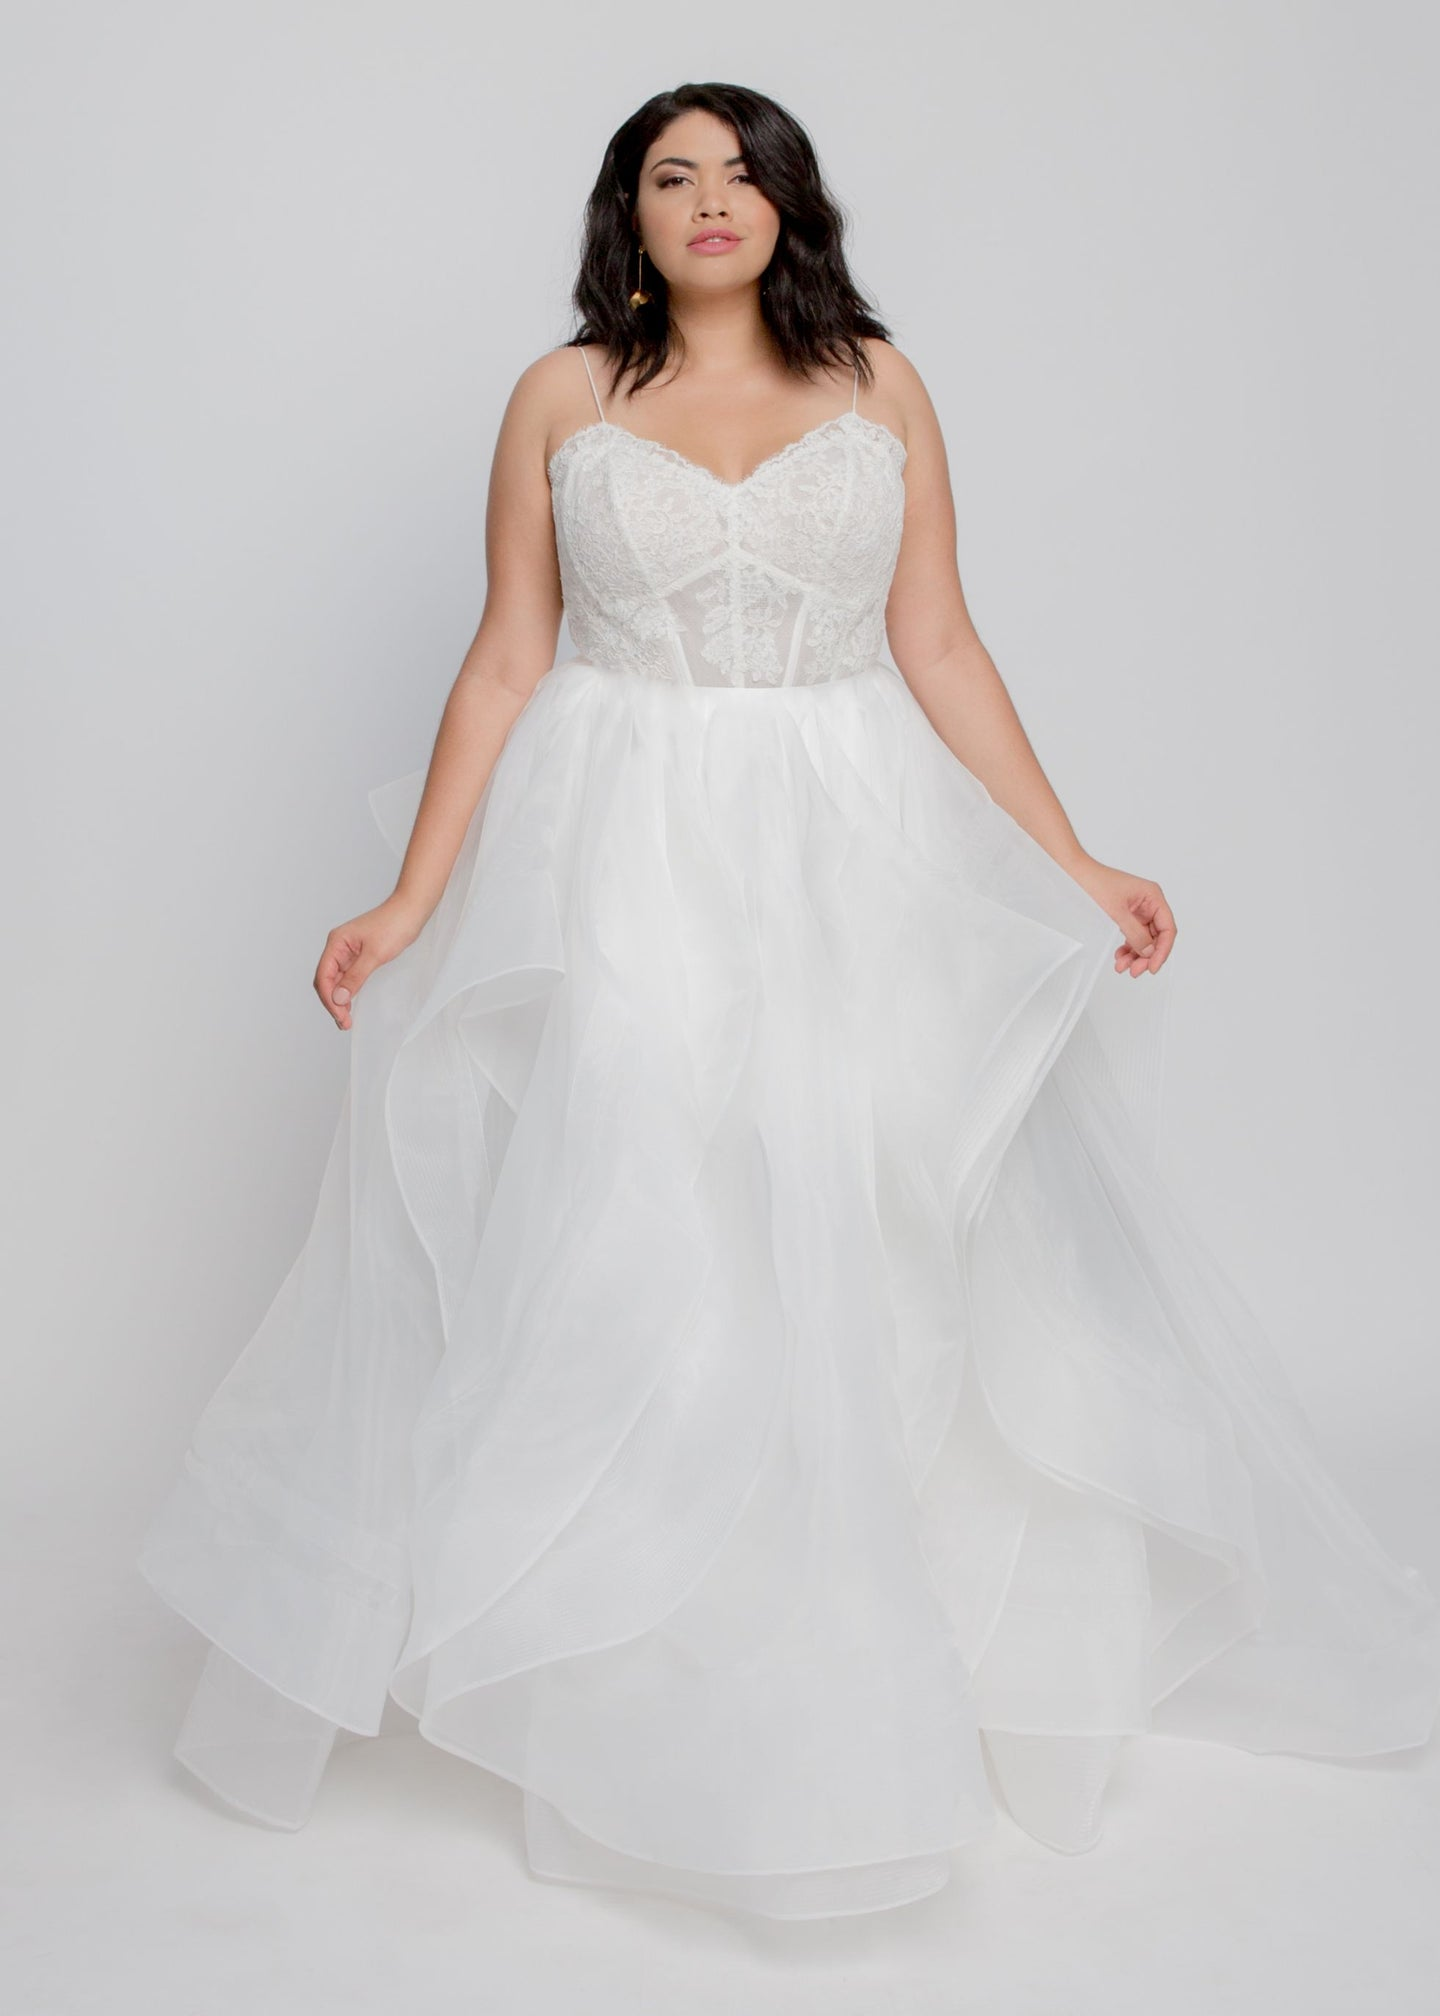 Gorgeous bridal gowns for all body shapes: plus size, curvy, or petite brides. Try on our wedding dresses at home. Size 0-30. Comfortable. Convenient. Fun. Lace or satin. Mermaid or A-line. The structured bustier offers beautiful lace with support that shows with sultry spaghetti straps. The flowing organza layers cascade beautifully and horsehair lined hems ensure they stay voluminous all day.